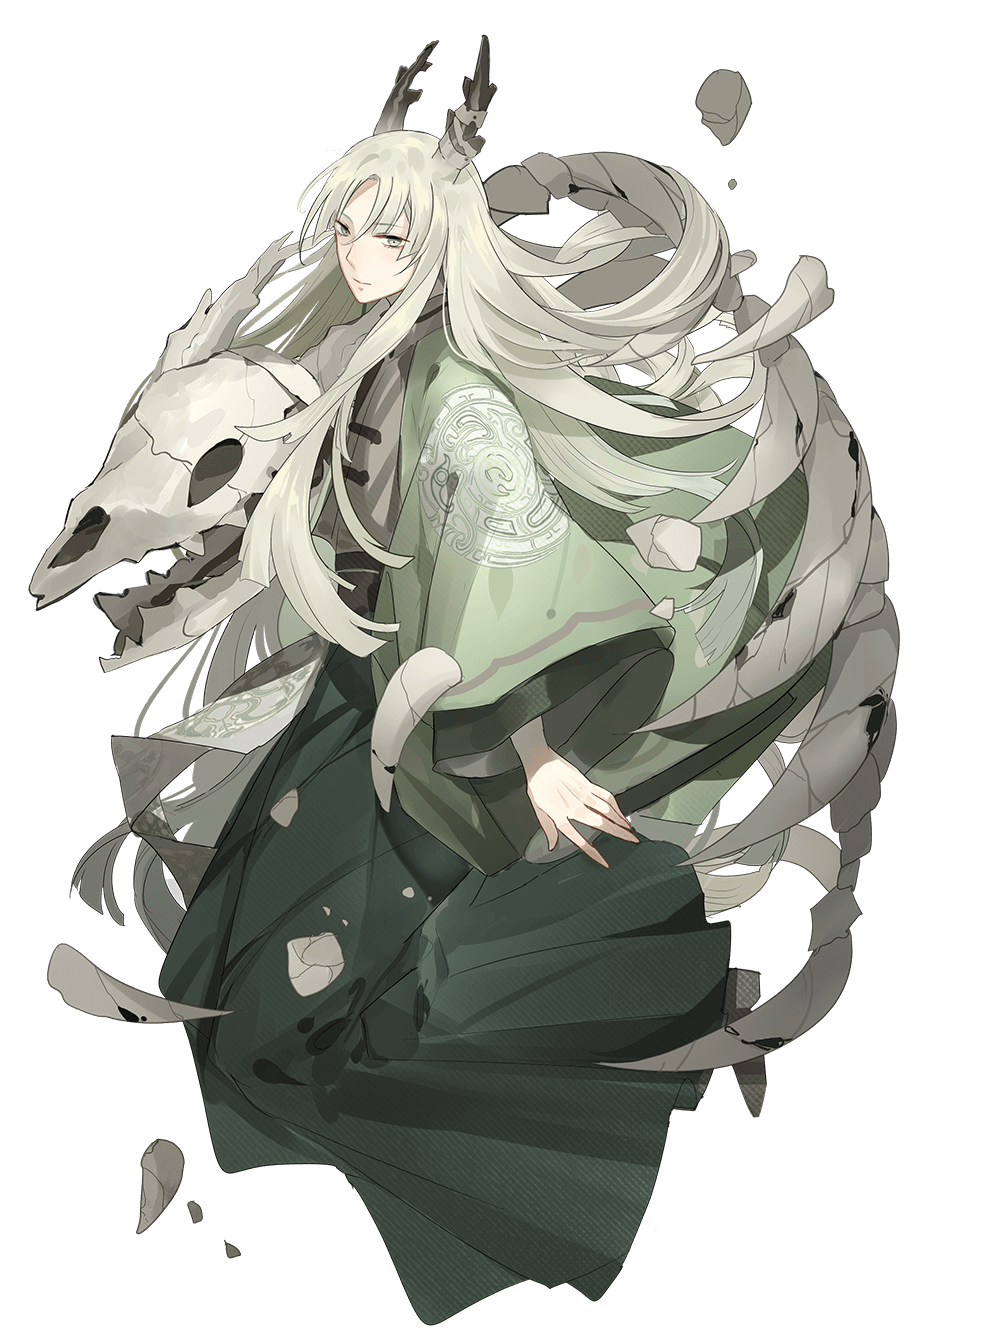 https://vignette.wikia.nocookie.net/food-fantasy/images/2/2d/Ascended-Longjing_Tea.png/revision/latest?cb=20190925184429